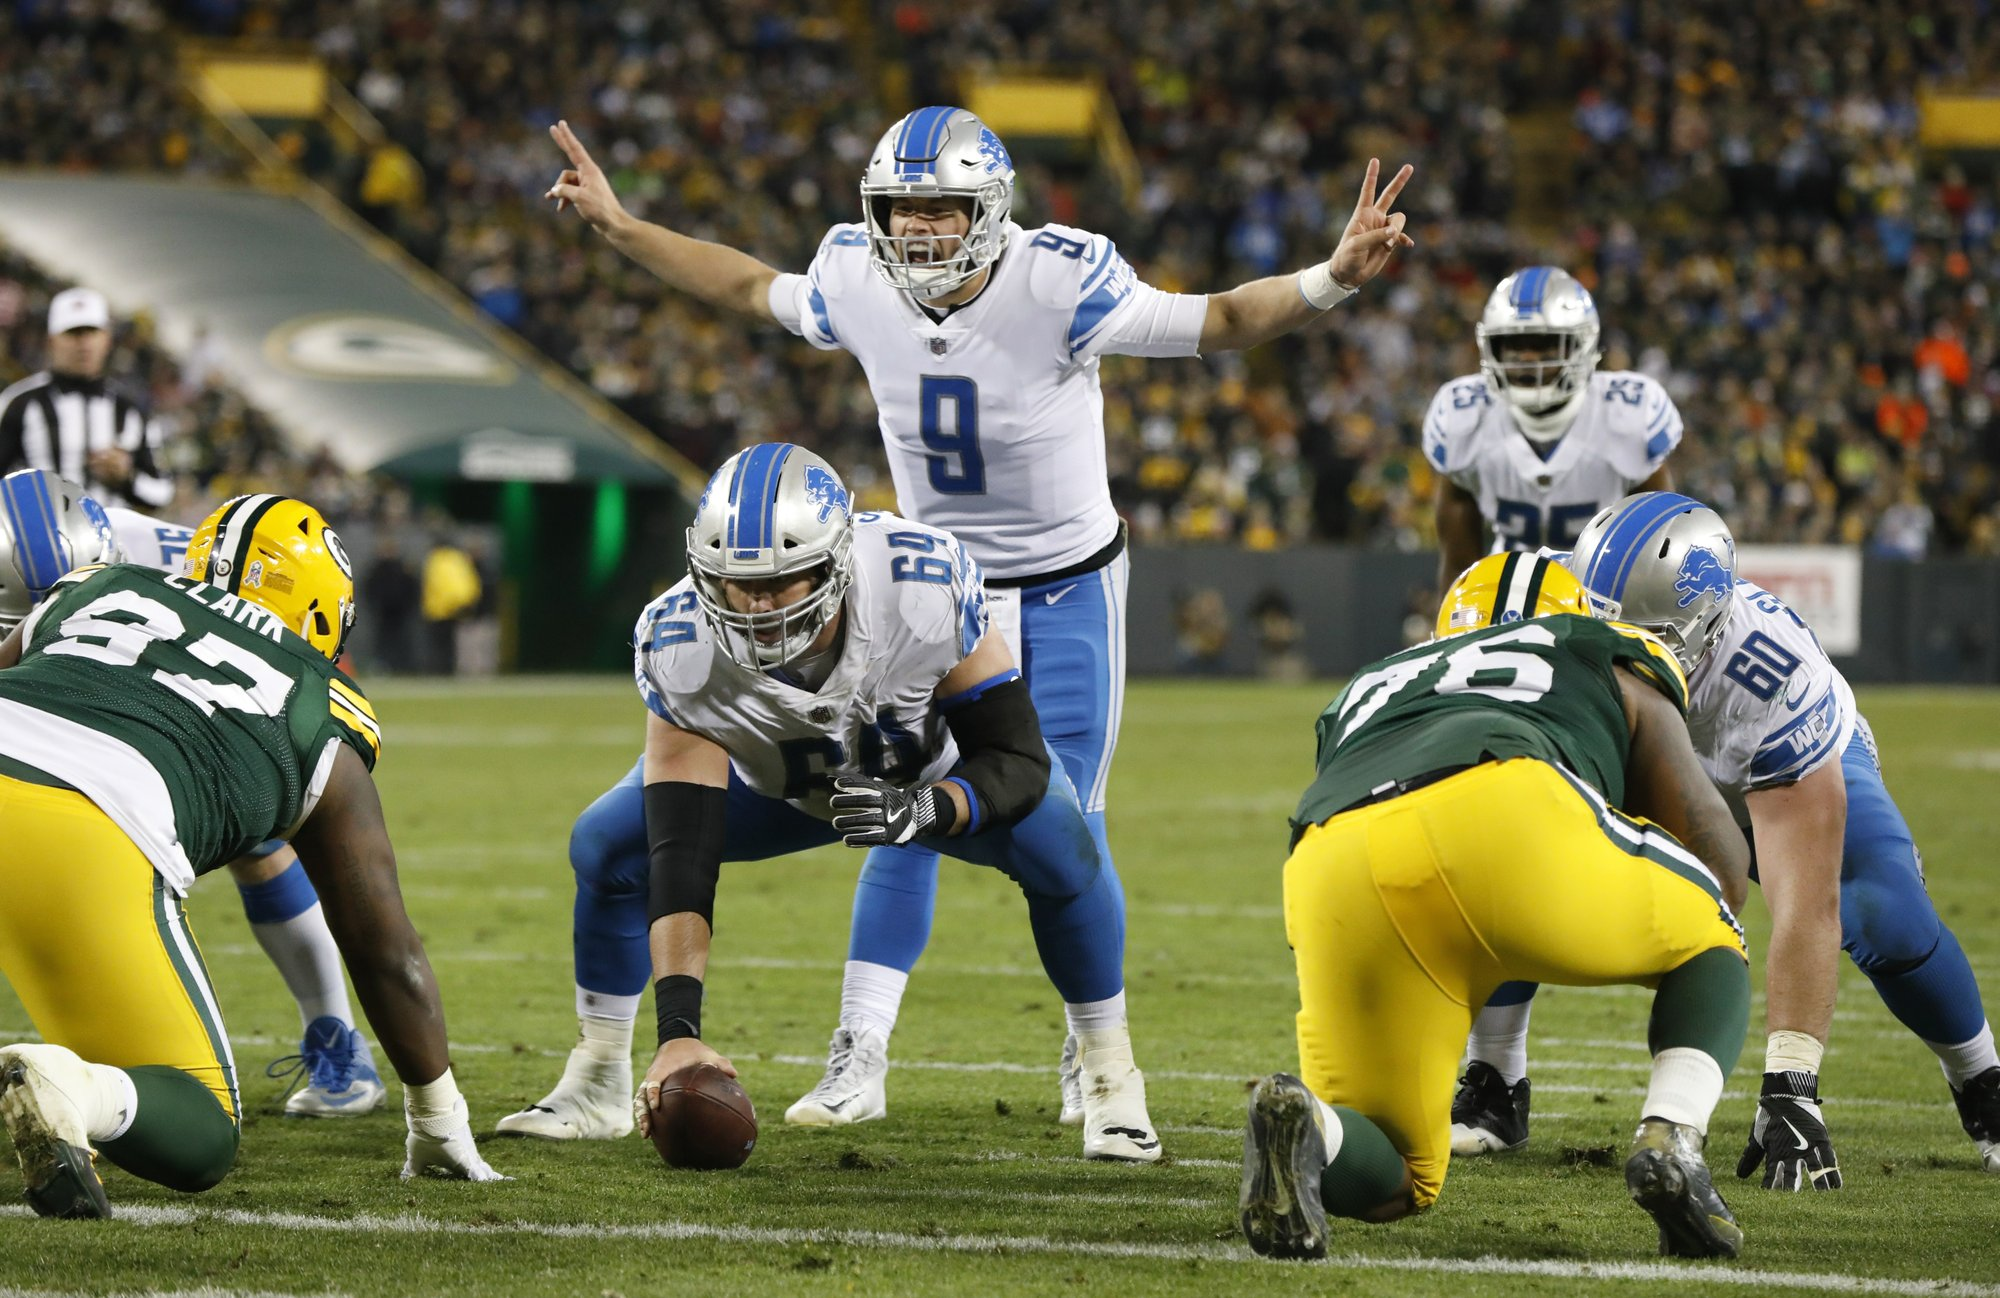 ef06f4747b3 Detroit Lions quarterback Matthew Stafford calls a play during the second  half of an NFL football game against the Green Bay Packers Monday